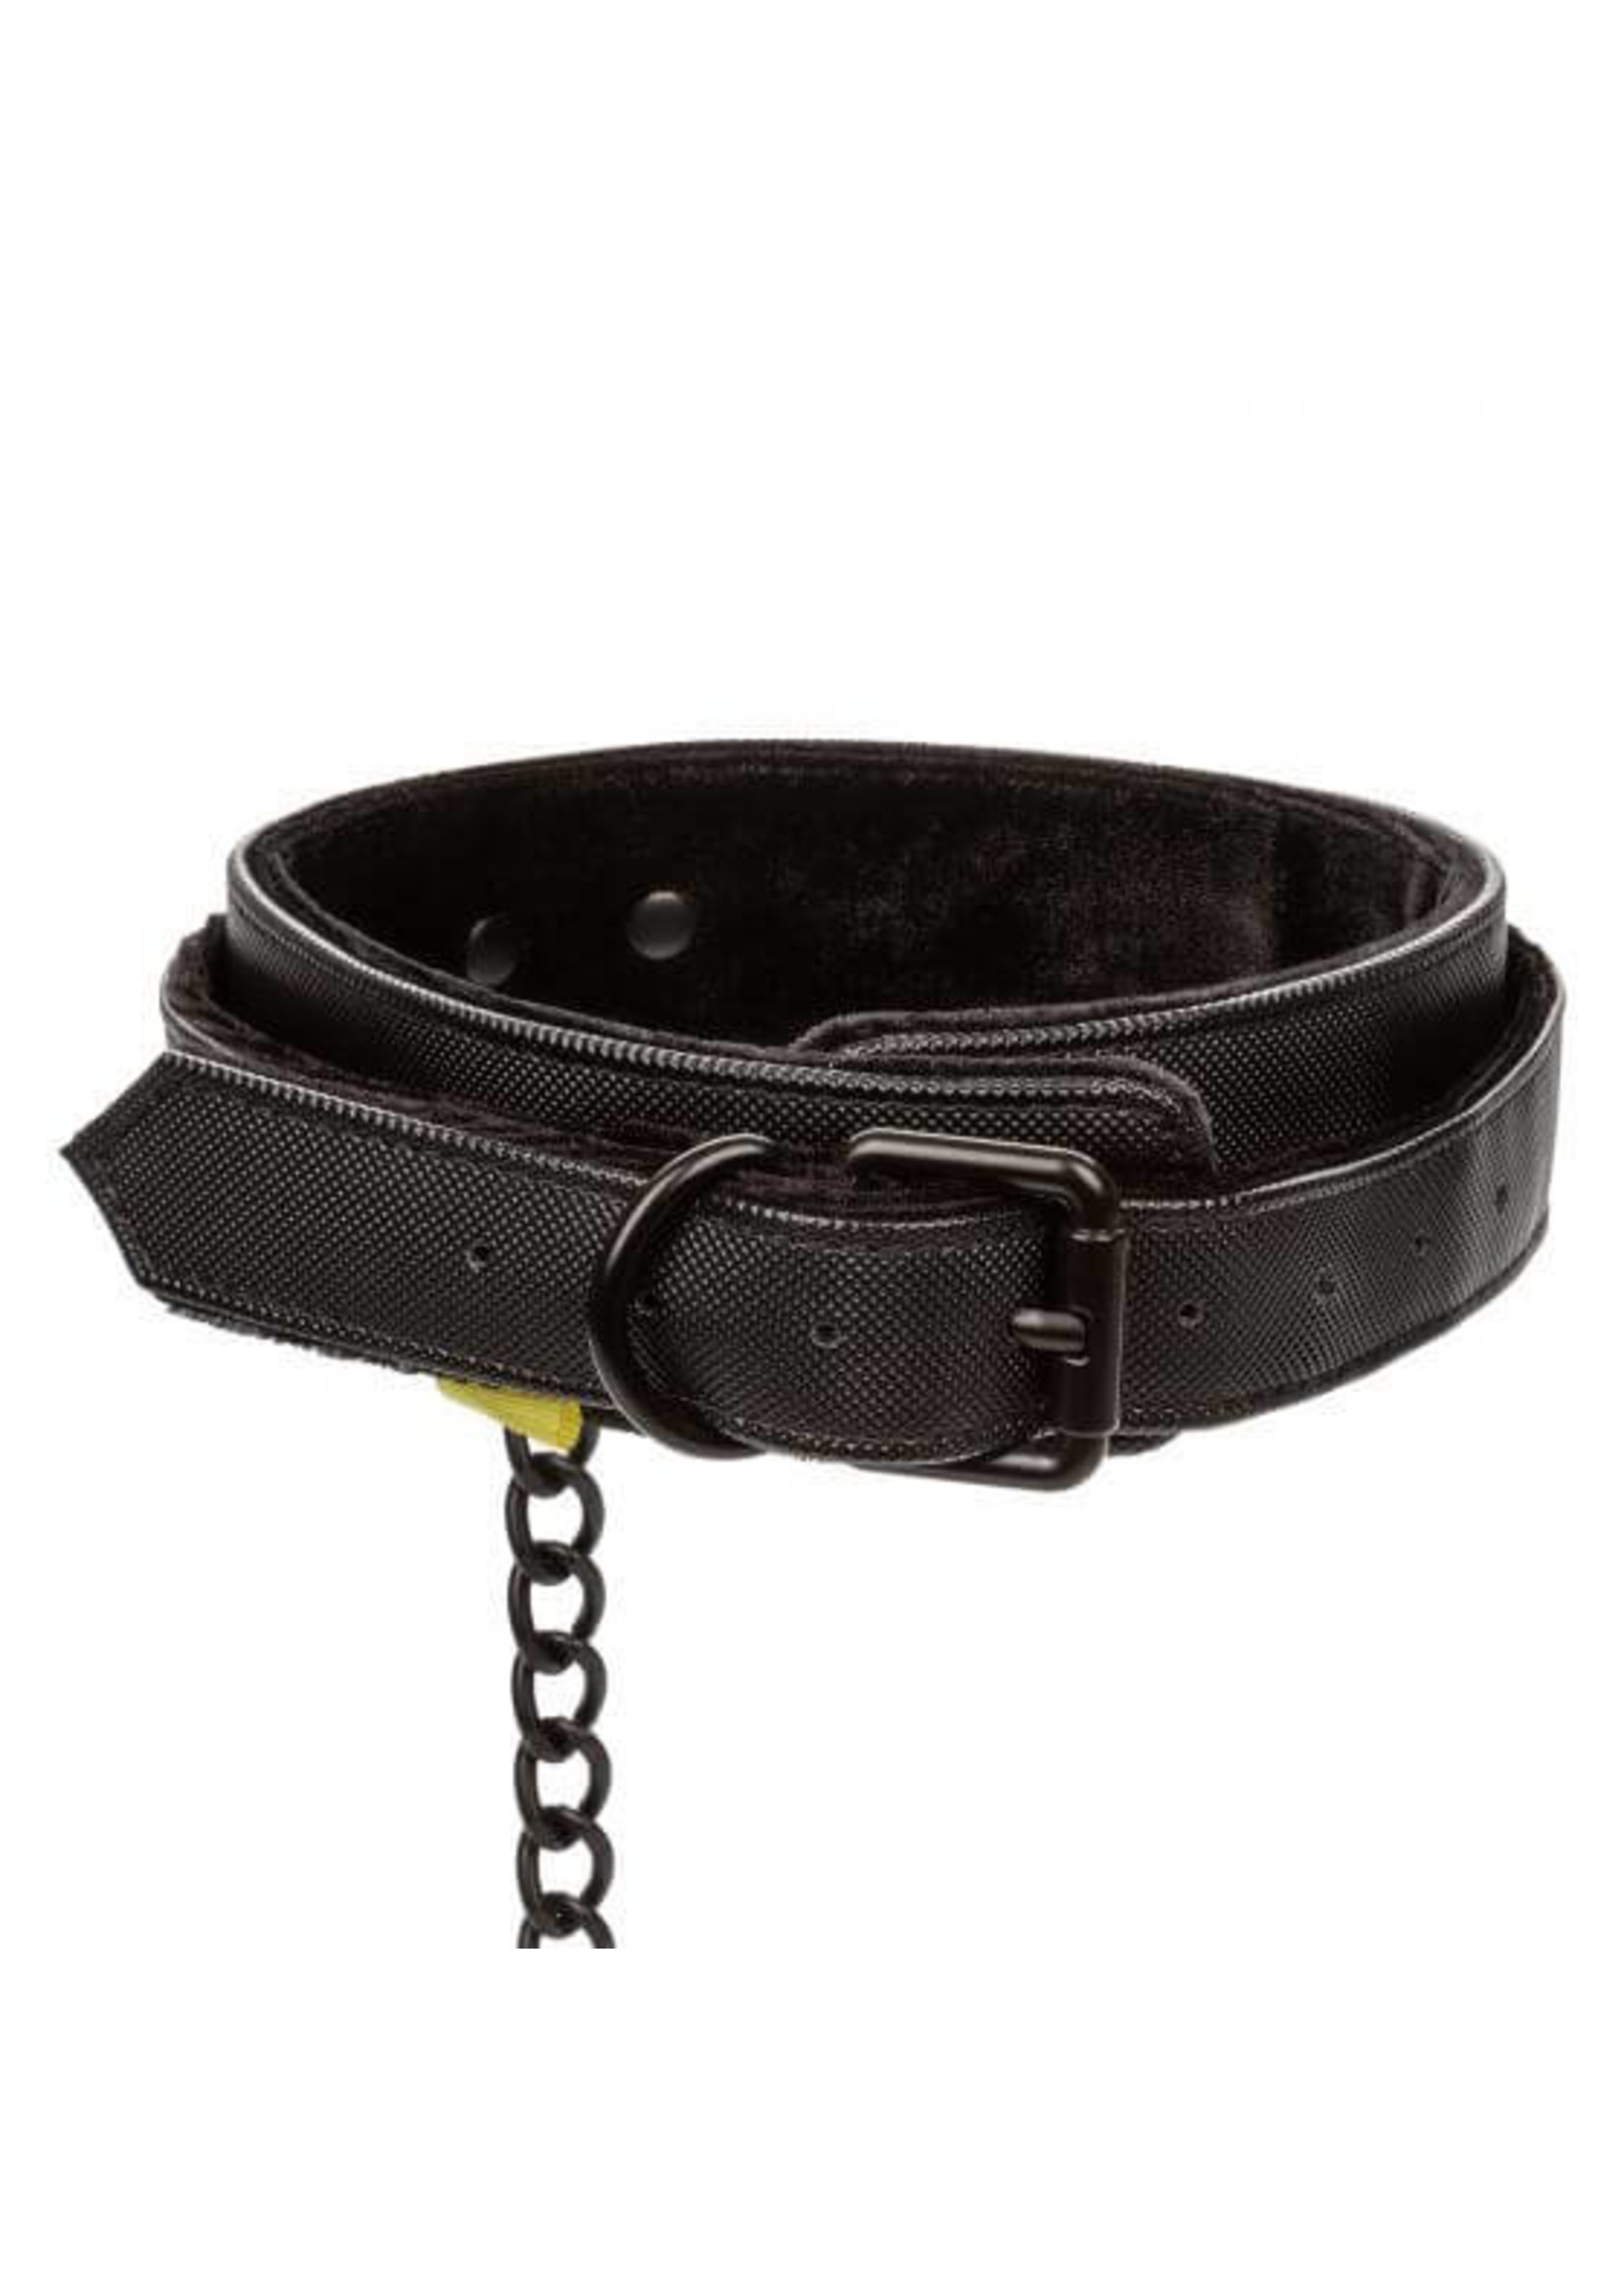 Boundless Boundless Collar with Leash